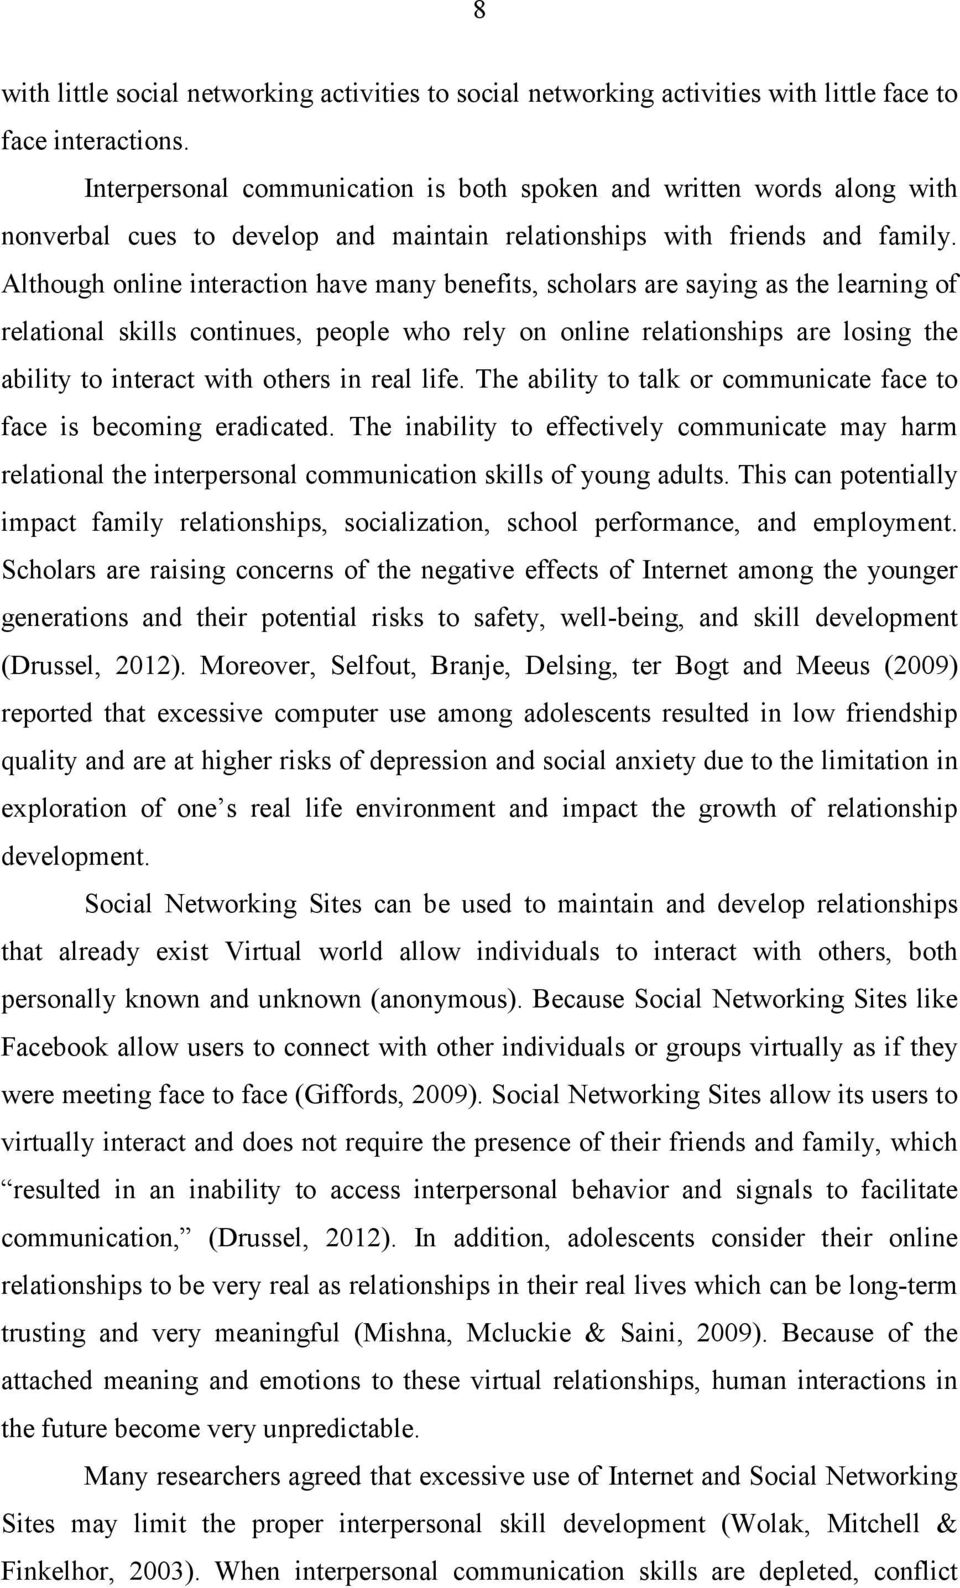 Although online interaction have many benefits, scholars are saying as the learning of relational skills continues, people who rely on online relationships are losing the ability to interact with